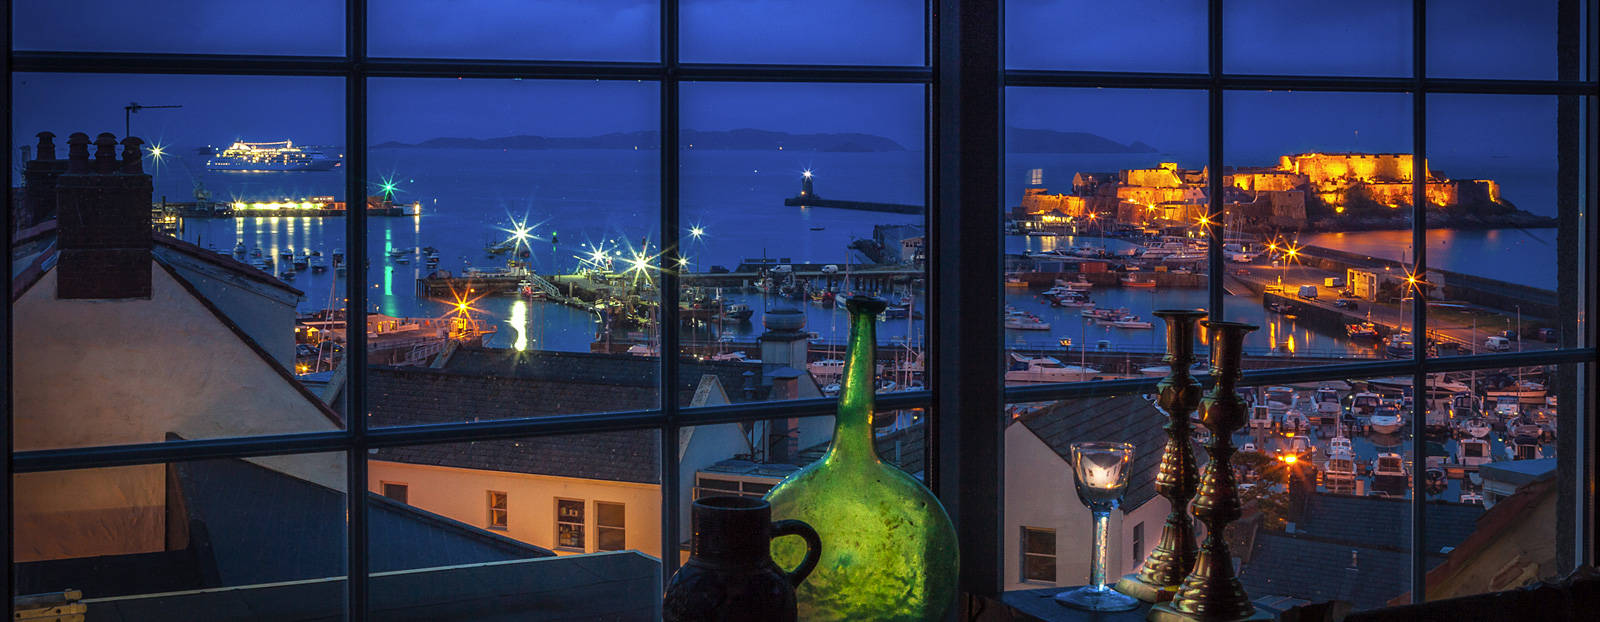 Window view over St. Peter Port harbour